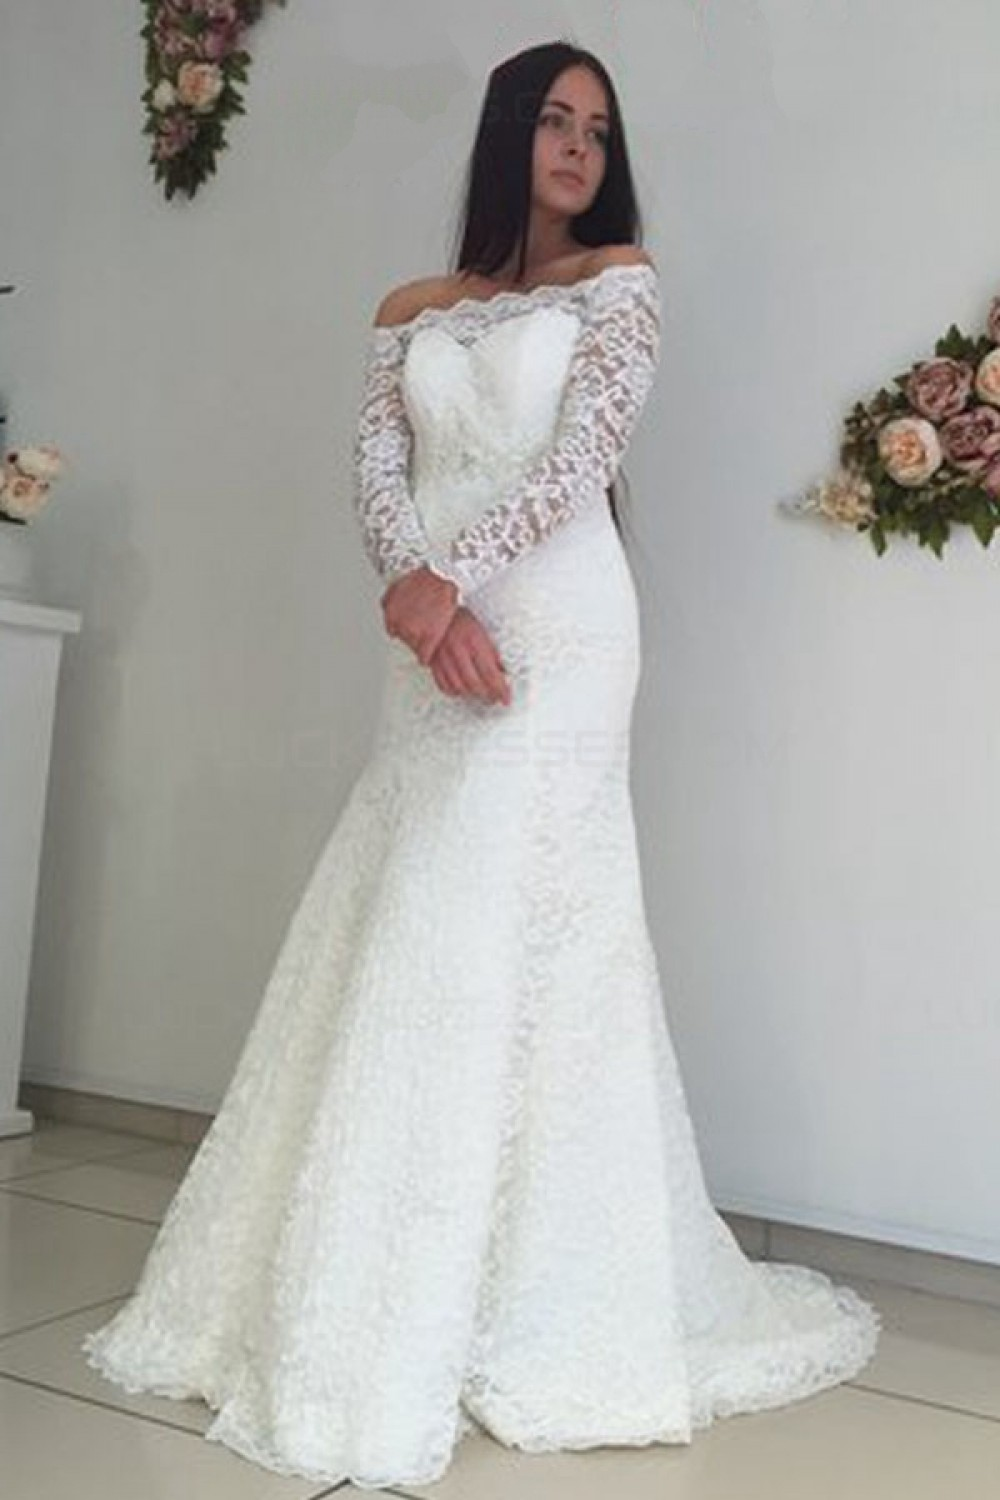 Trumpet/Mermaid Off-the-shoulder Long Sleeve Lace Wedding Dress